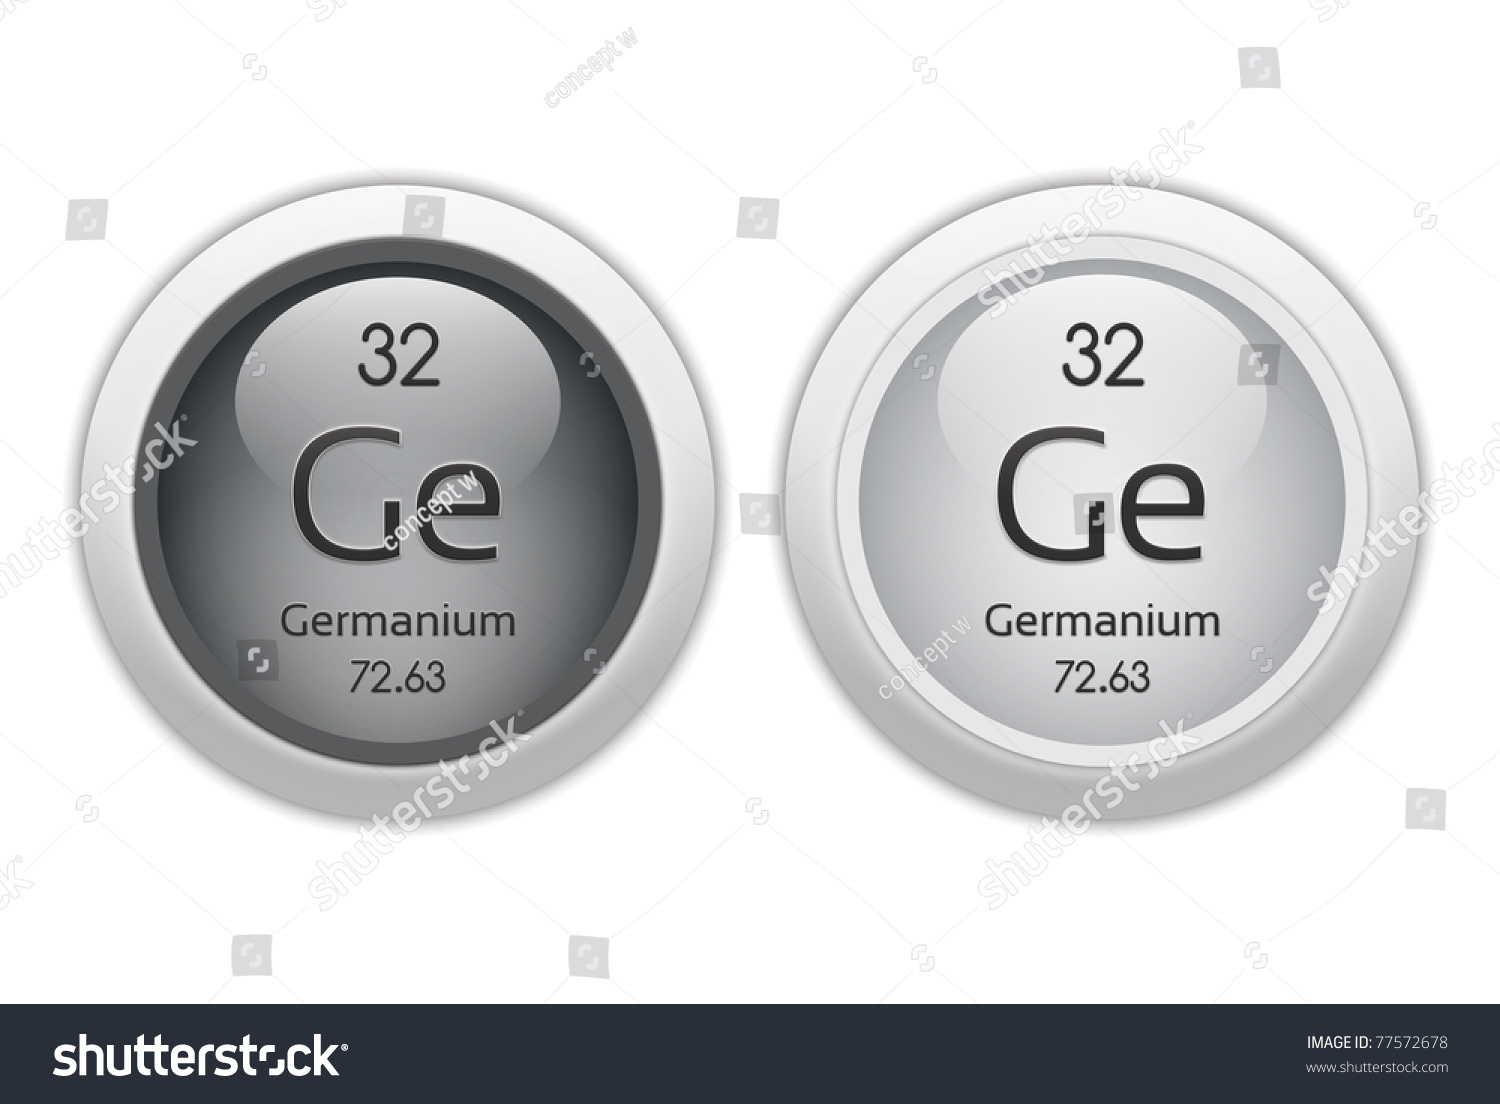 Germanium two web buttons chemical element stock illustration germanium two web buttons chemical element with atomic number 32 it is represented biocorpaavc Gallery